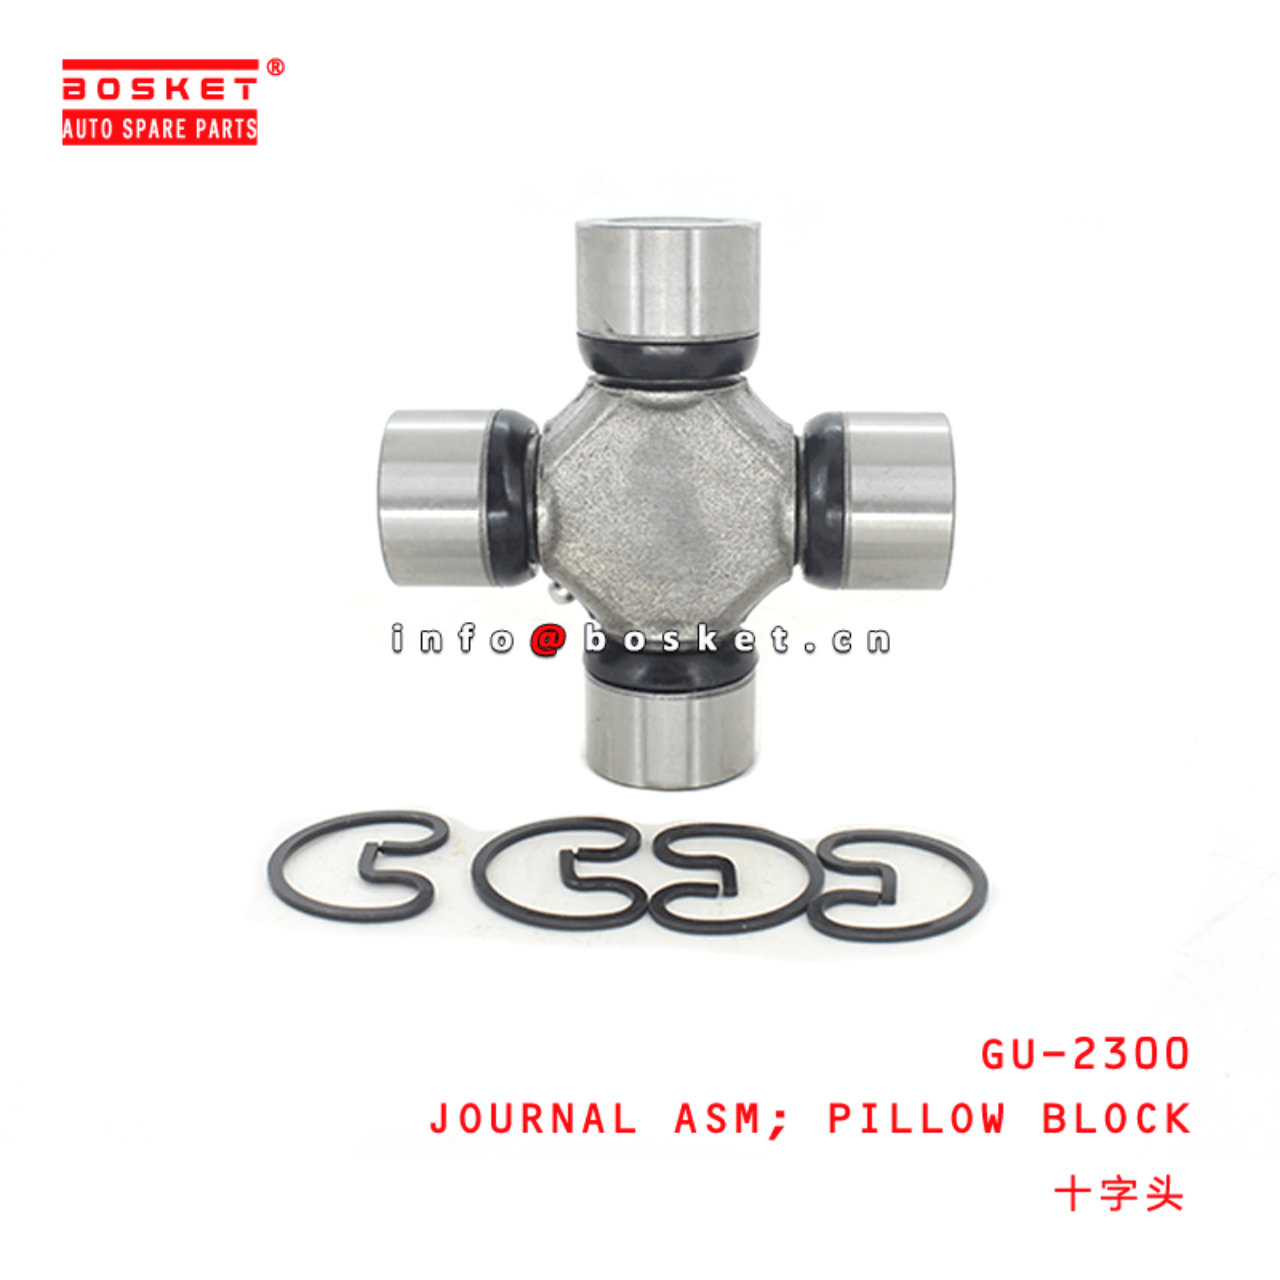 GU-2300 Pillow Block Journal Assembly Suitable for ISUZU